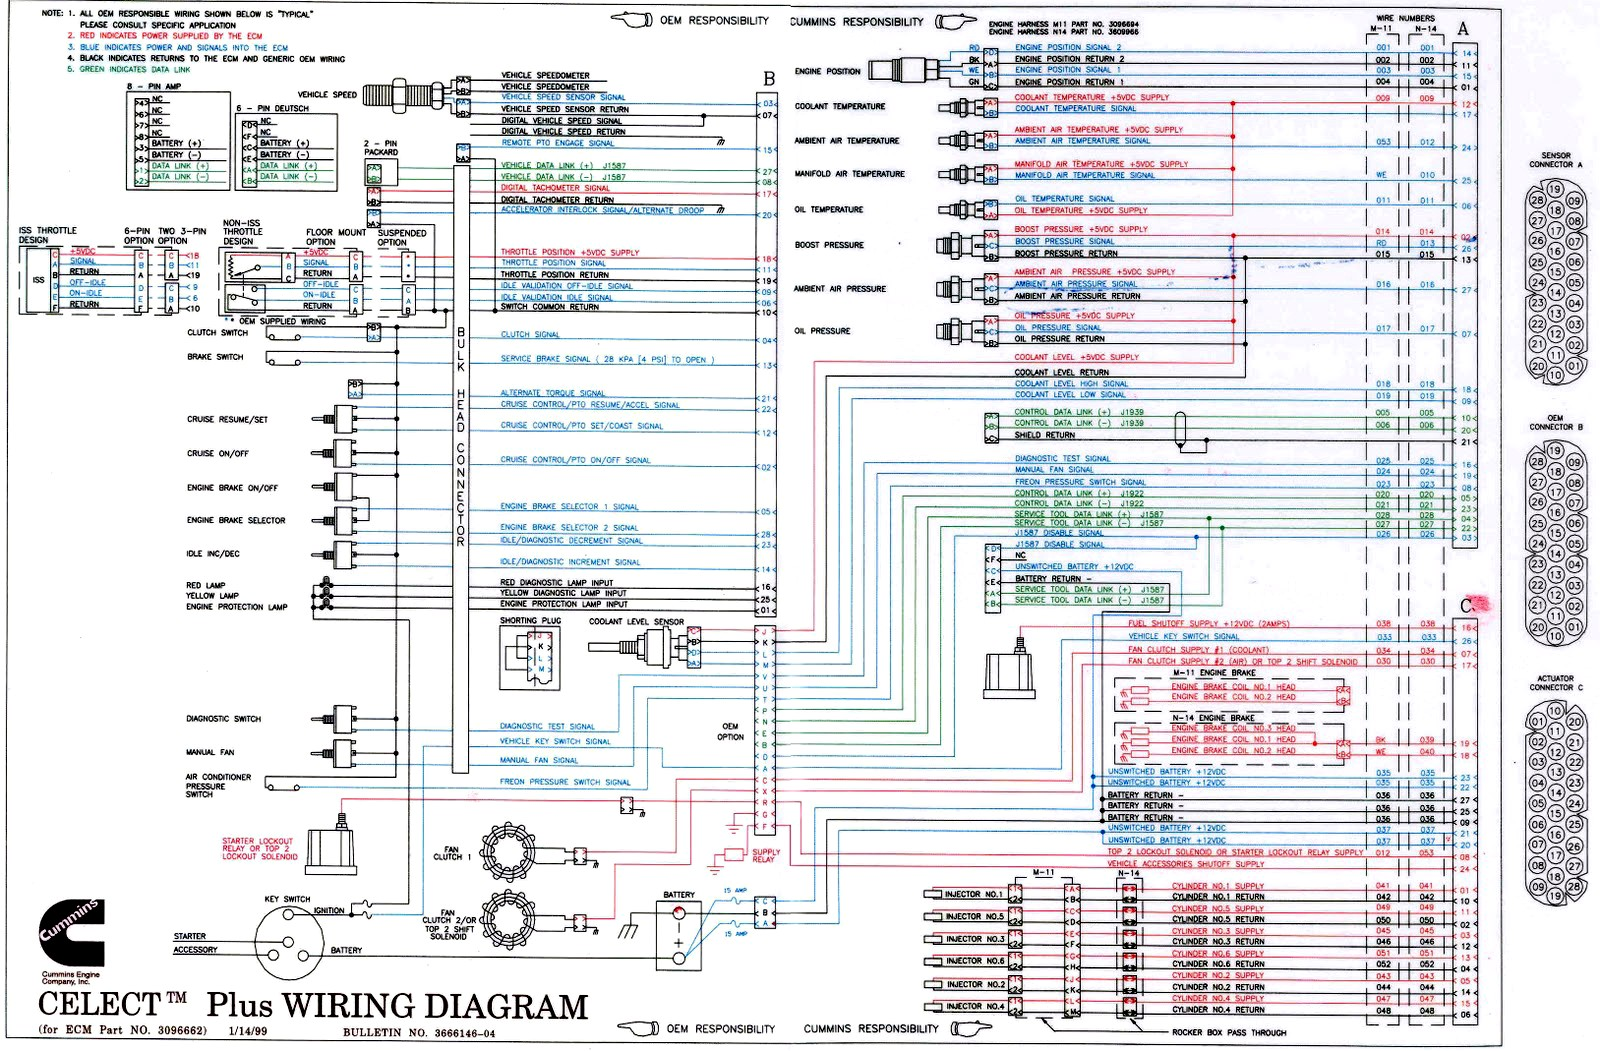 Celect+Plus+Wiring+Diagram+Cummins kenworth t660 wiring diagram kenworth t660 battery location \u2022 free kenworth battery wiring diagram at eliteediting.co